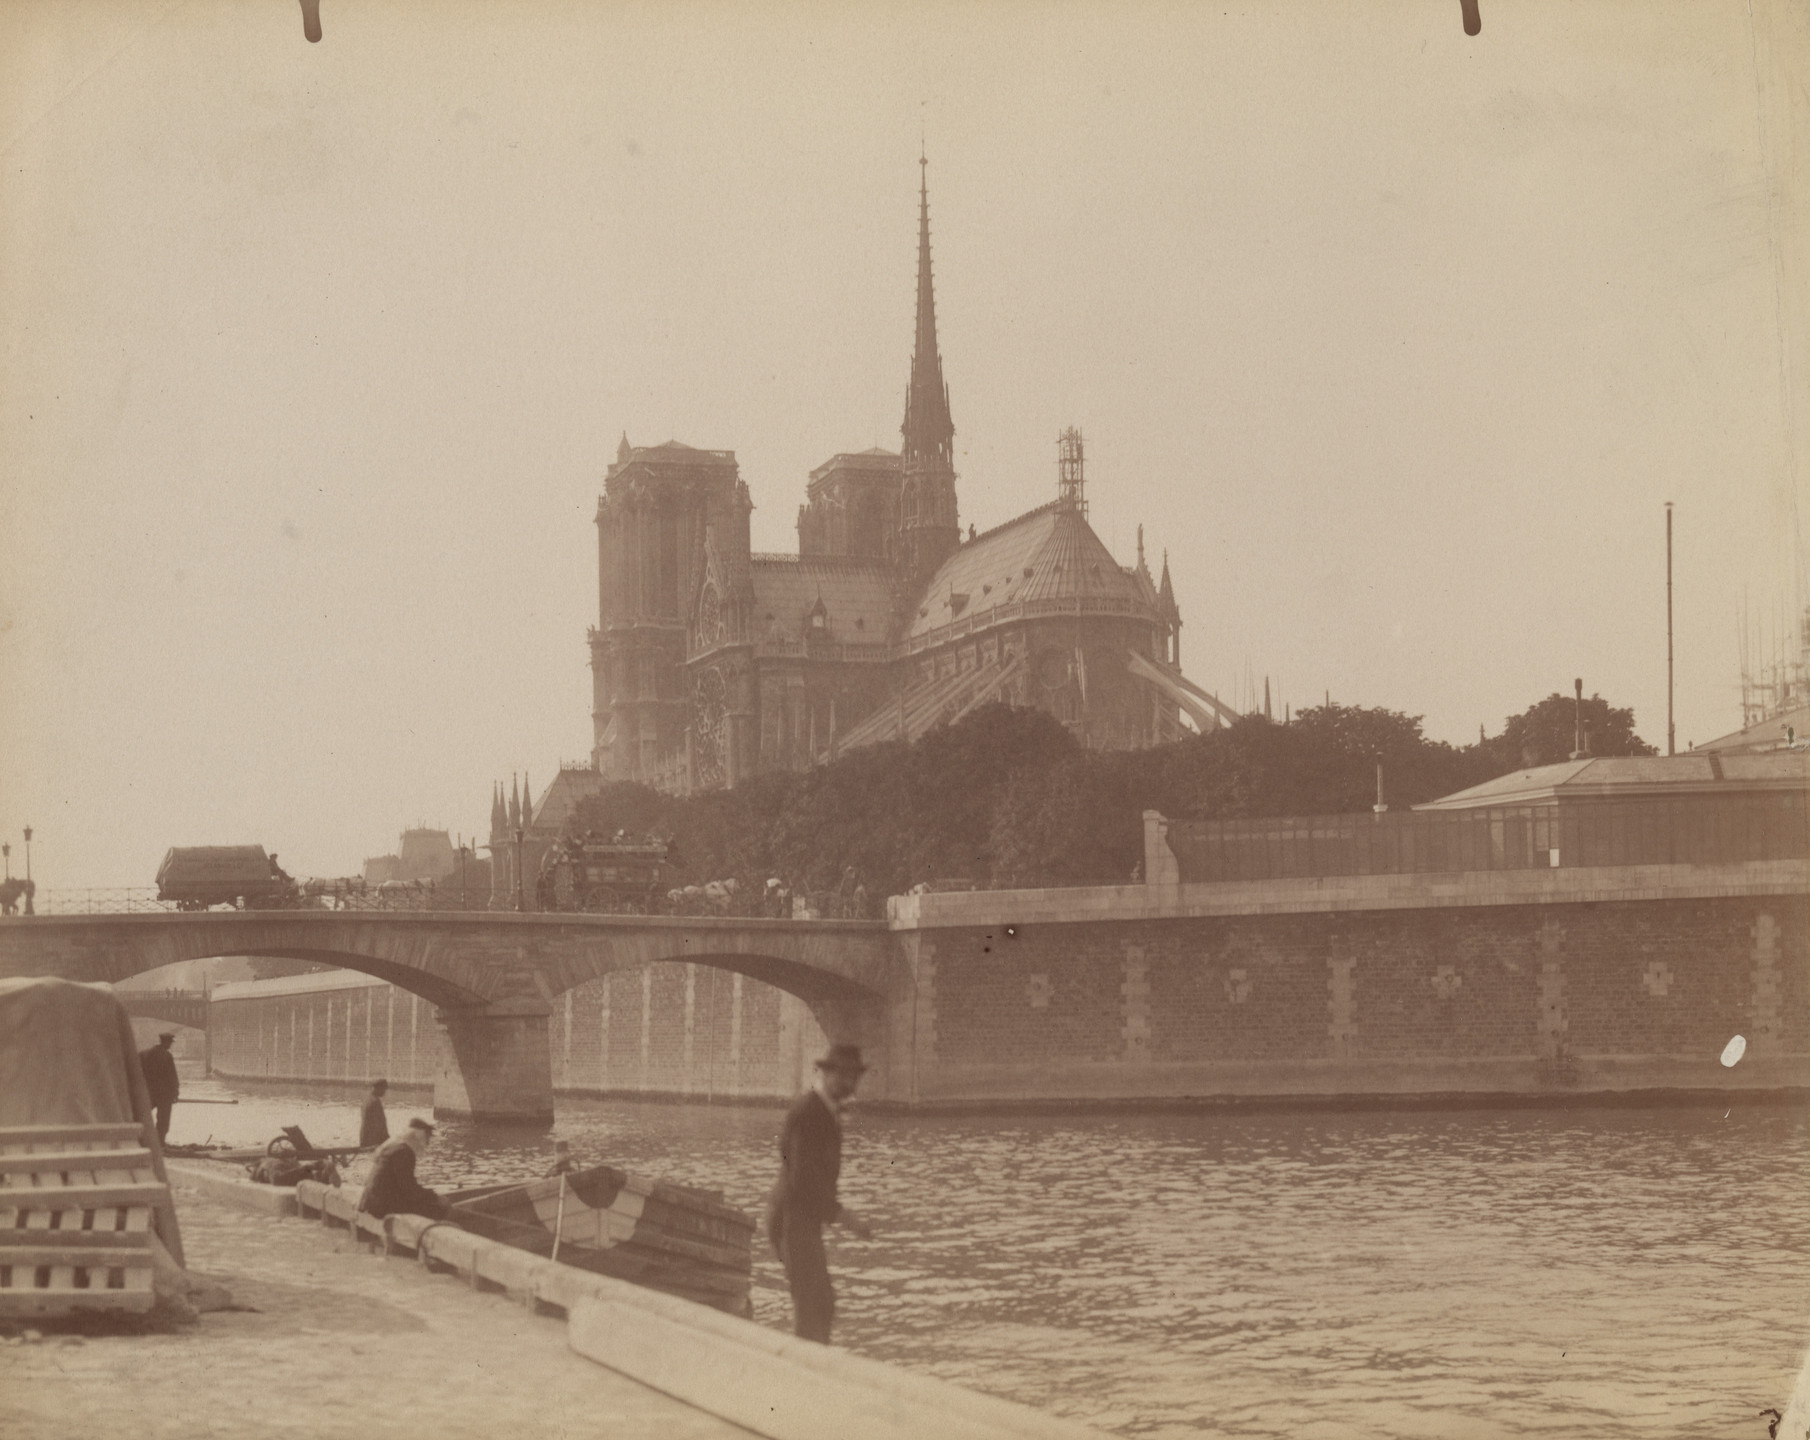 Eugène Atget. Untitled. 1899